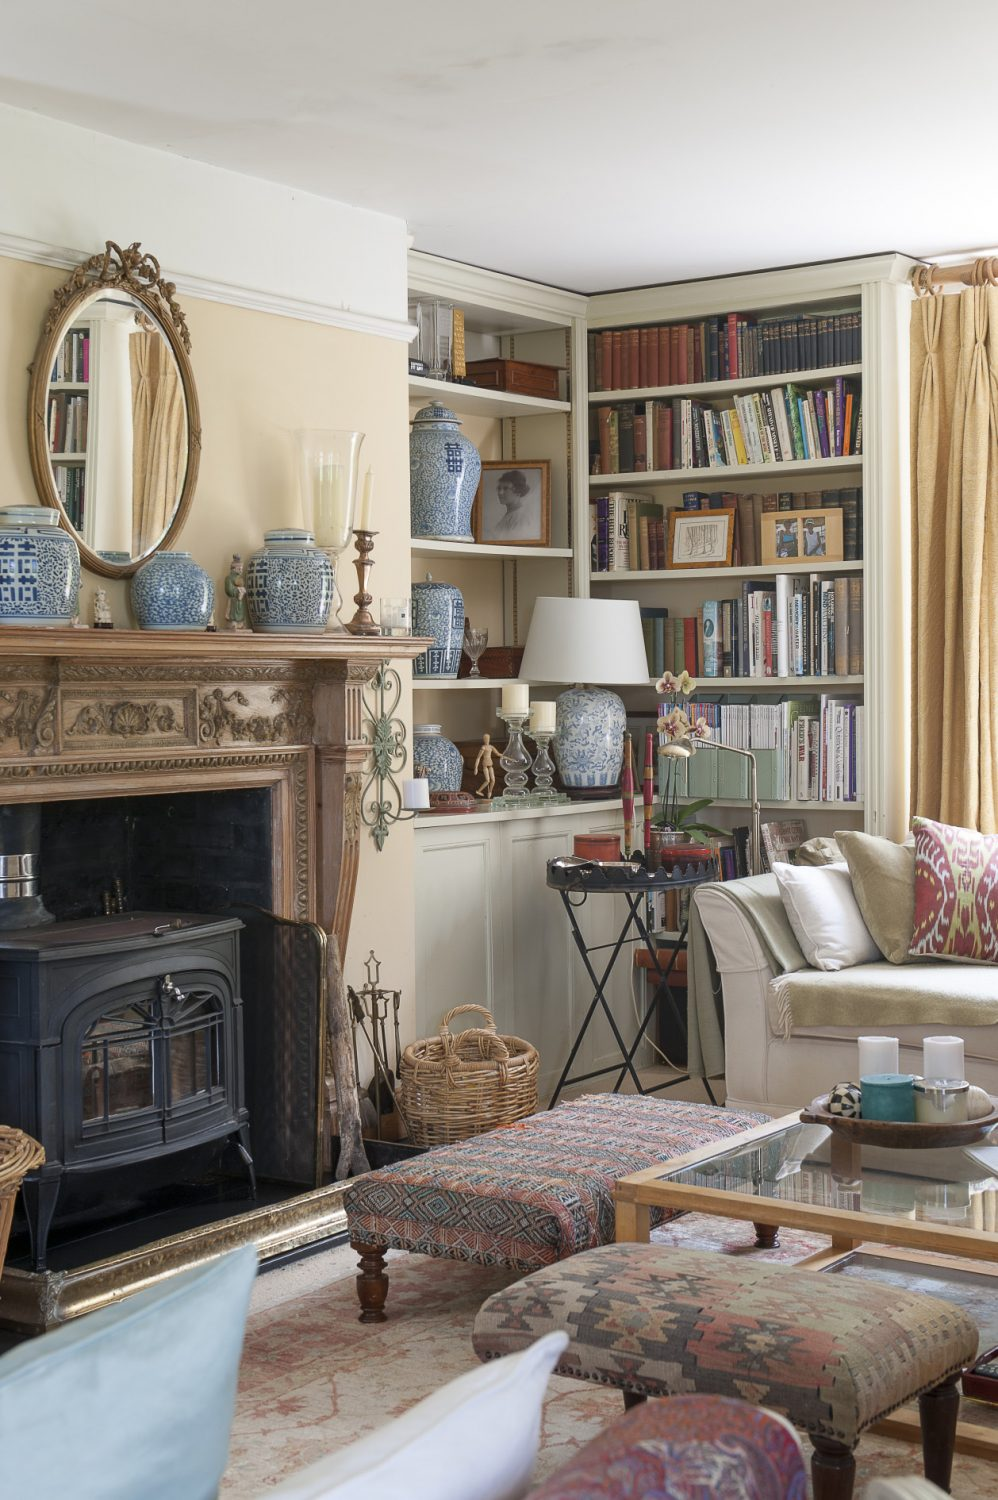 The sitting room is painted and decorated in shades of pale apricot with splashes of a heavenly soft pale green